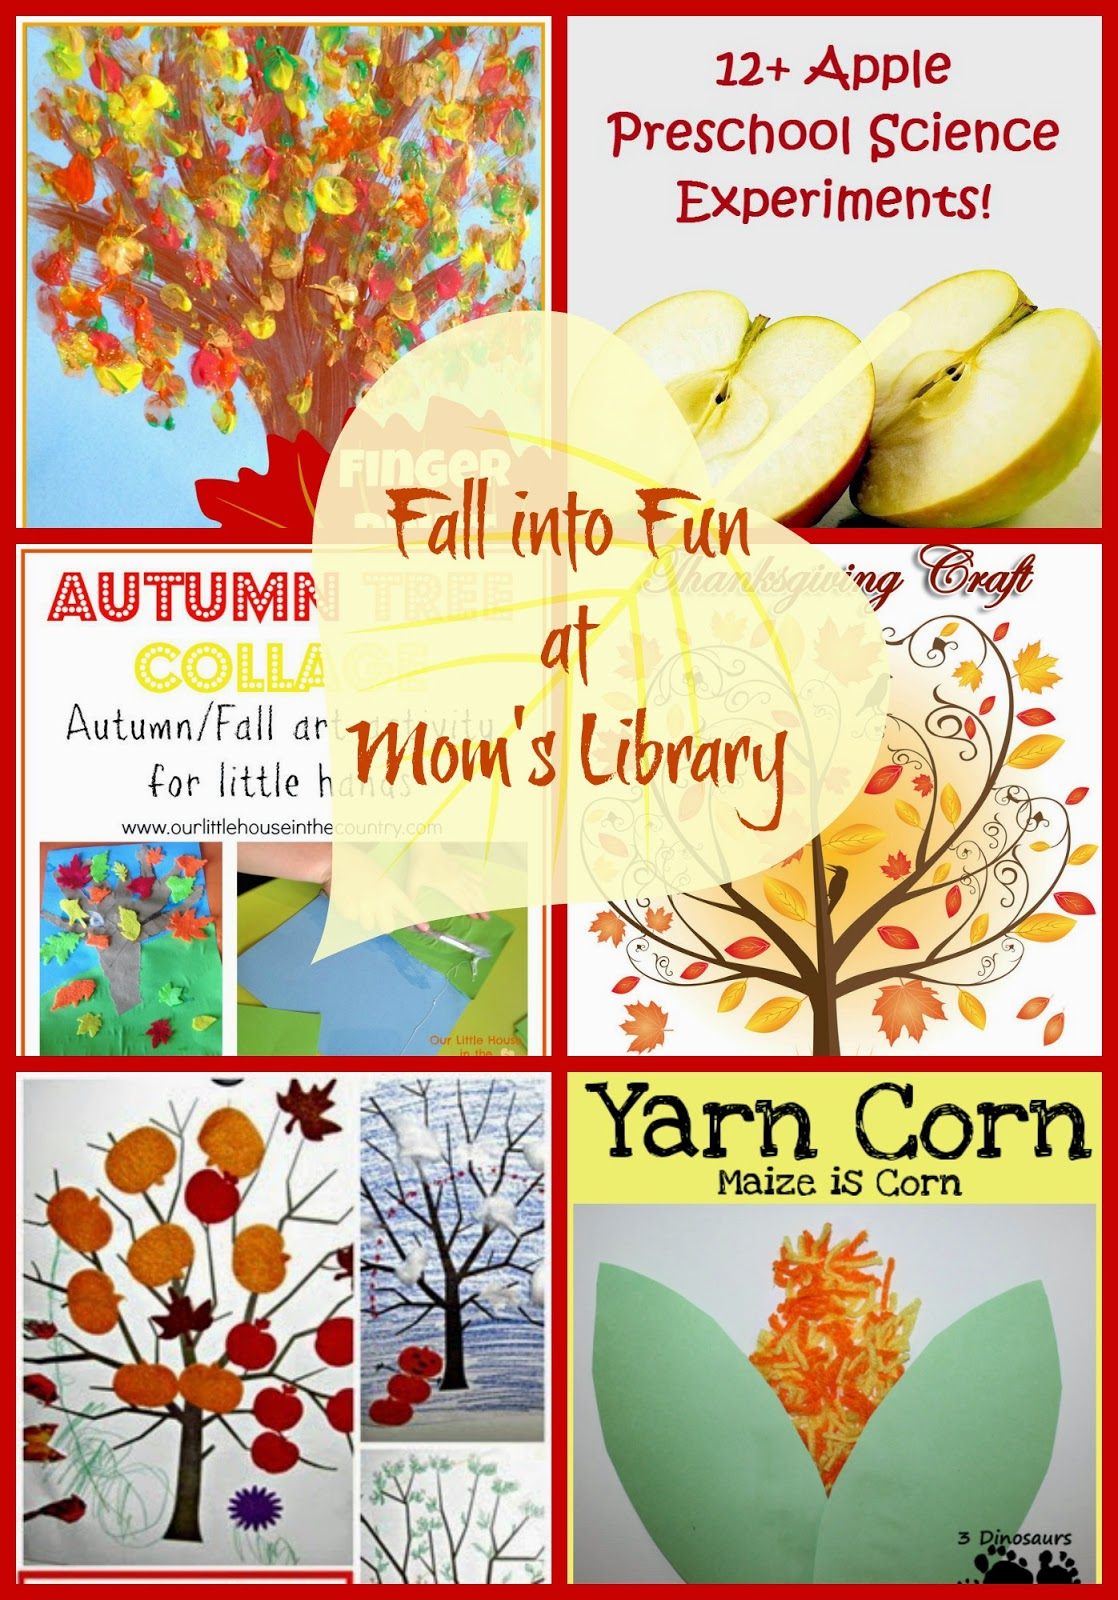 Fall into Fall Fun at Mom's Library